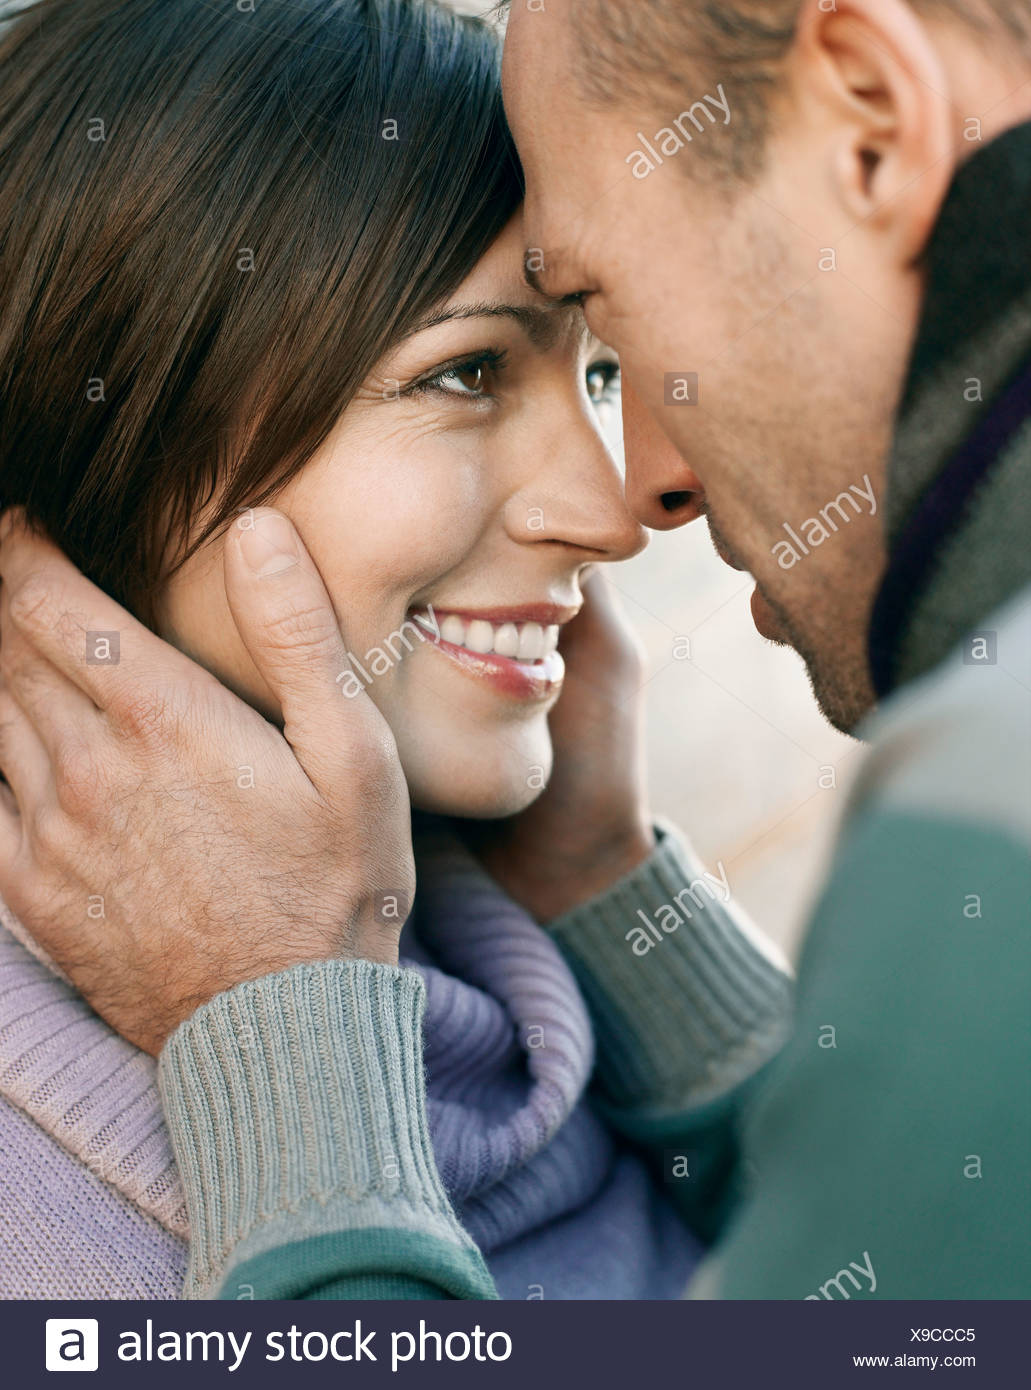 Couple looking in each others eyes, outdoors, close up - Stock Image